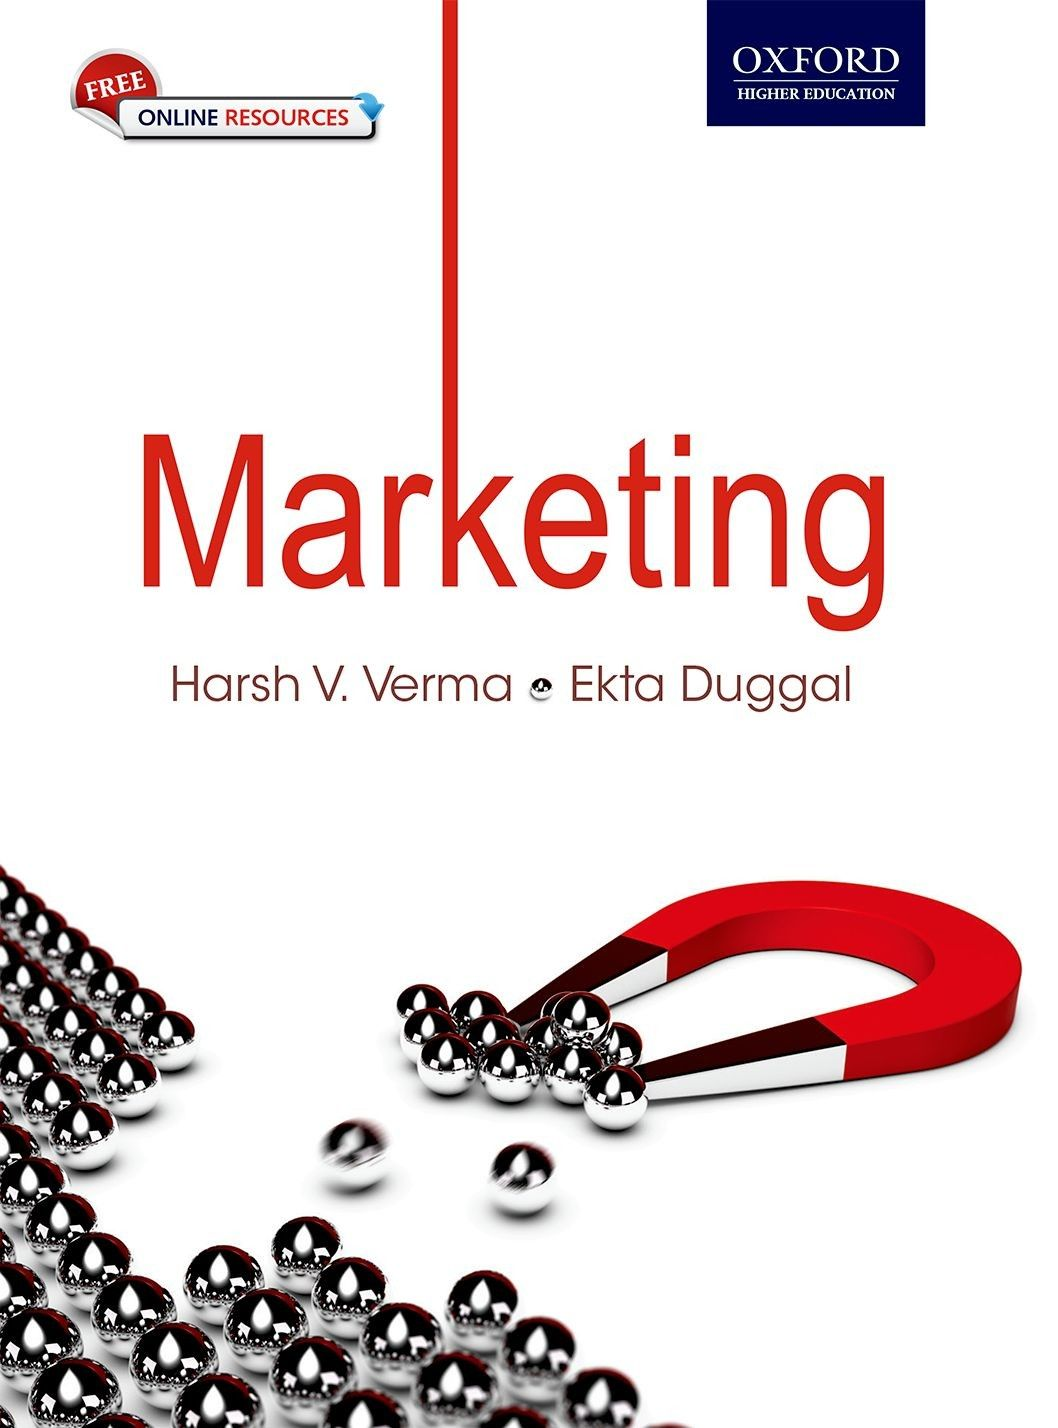 Check out our New Product  Marketing COD  AUTHOR: Harsh V. Verma and Ekta DuggalPublication date: 06.07.2015  Rs.425